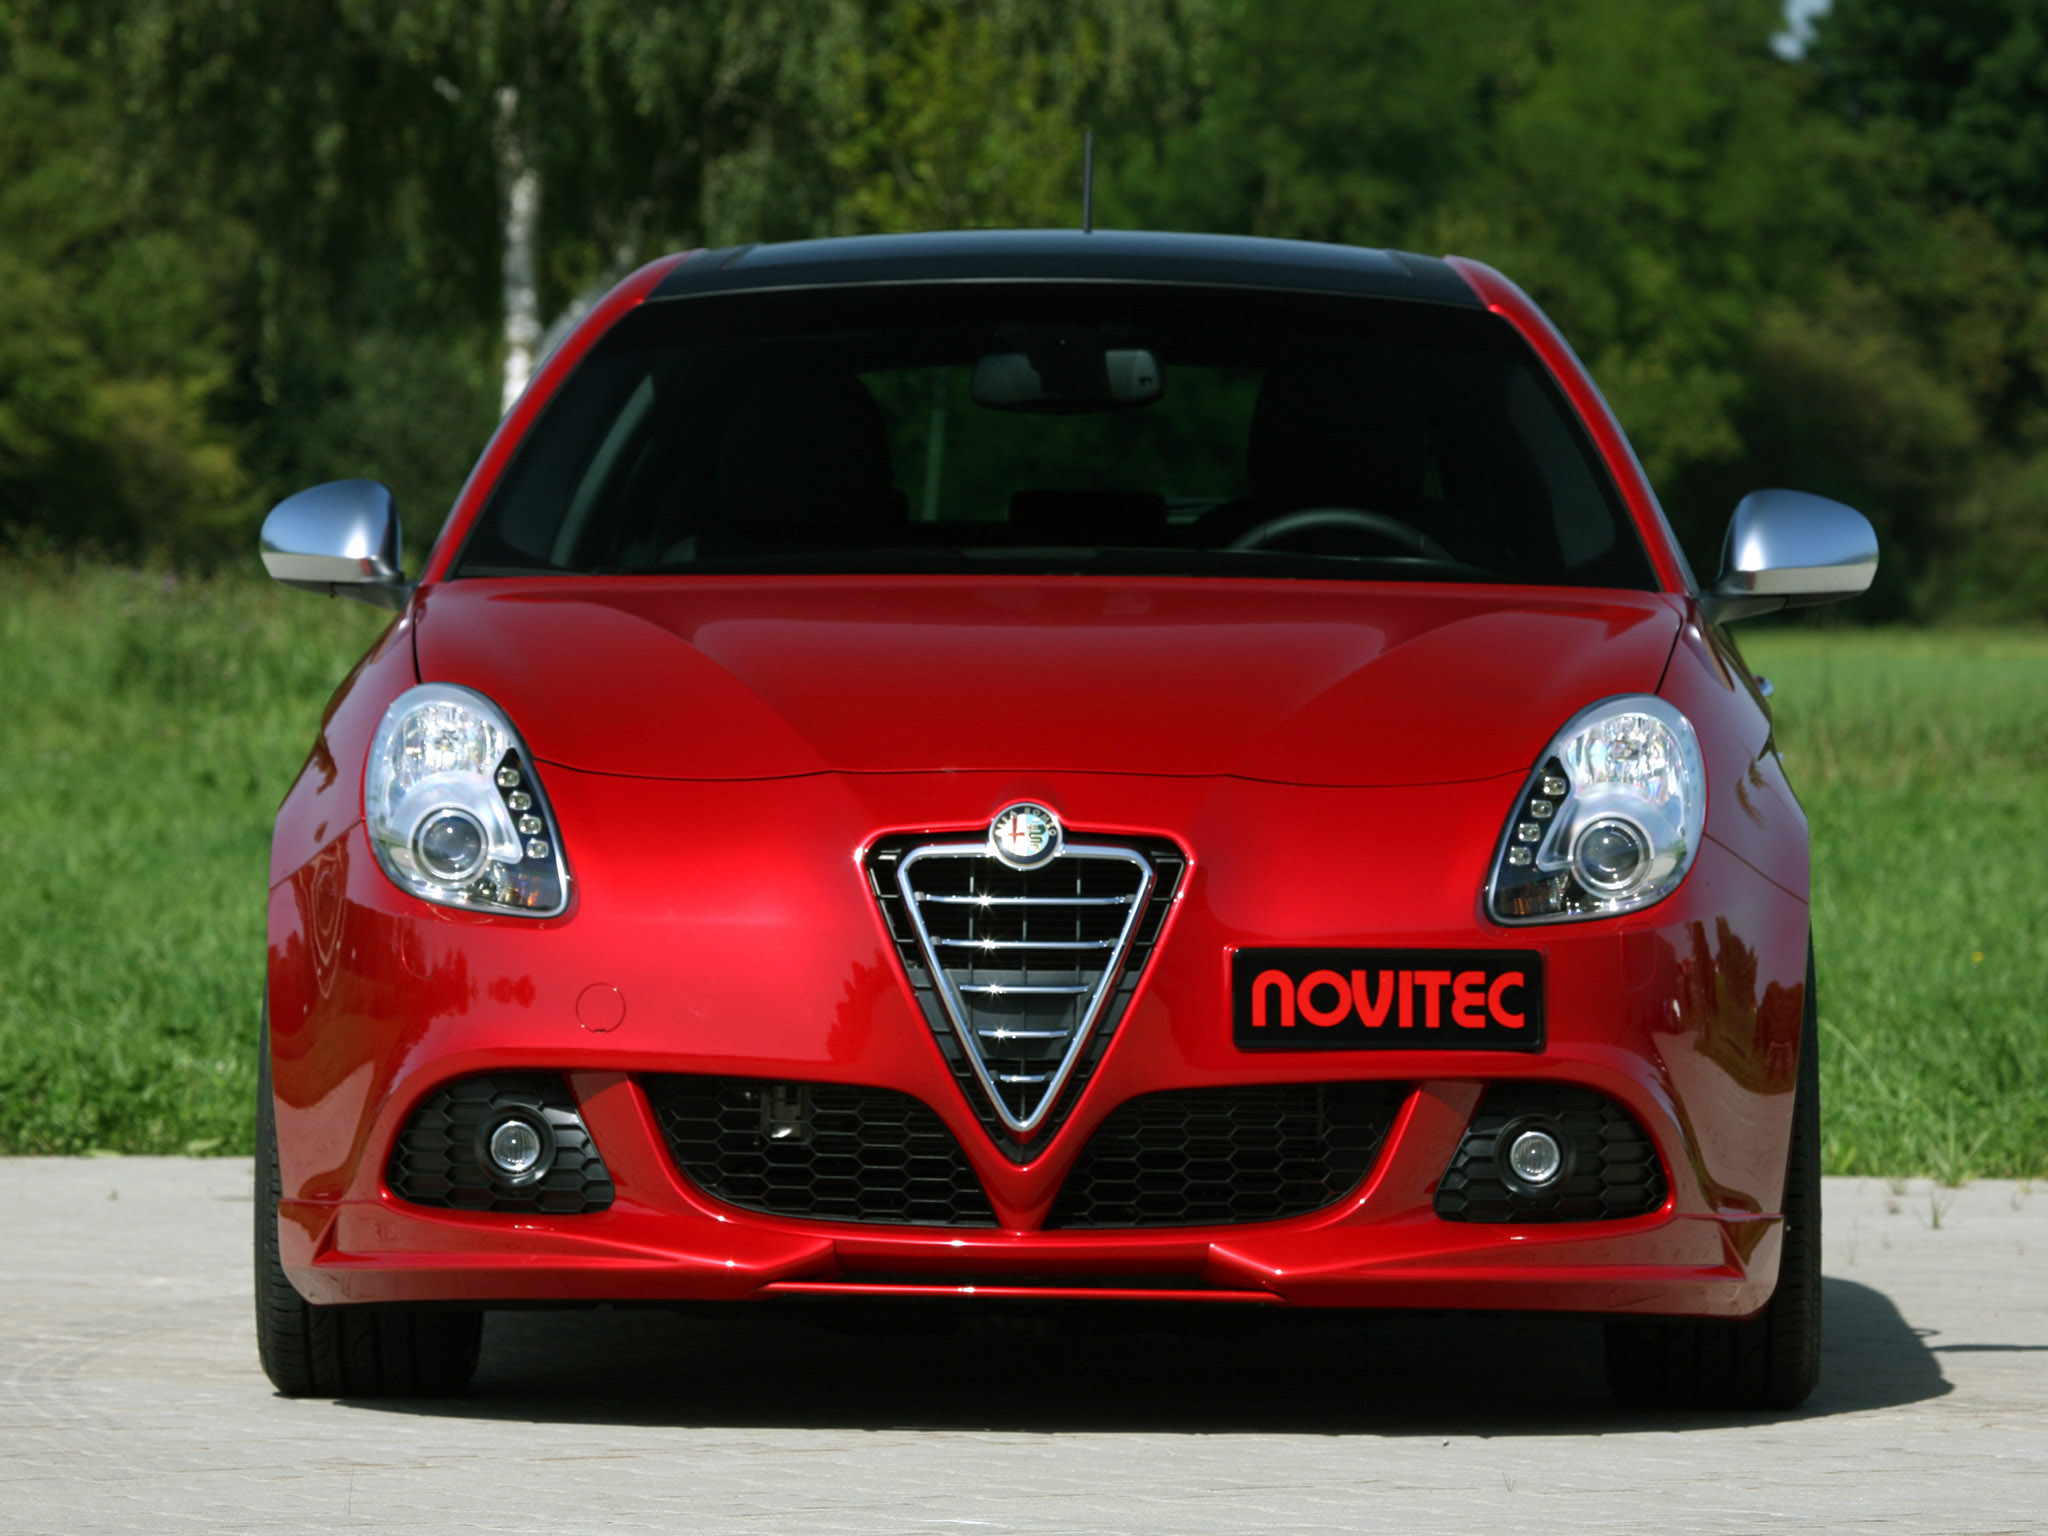 novitec alfa romeo giulietta 2011 novitec alfa romeo giulietta 2011 photo 01 car in pictures. Black Bedroom Furniture Sets. Home Design Ideas